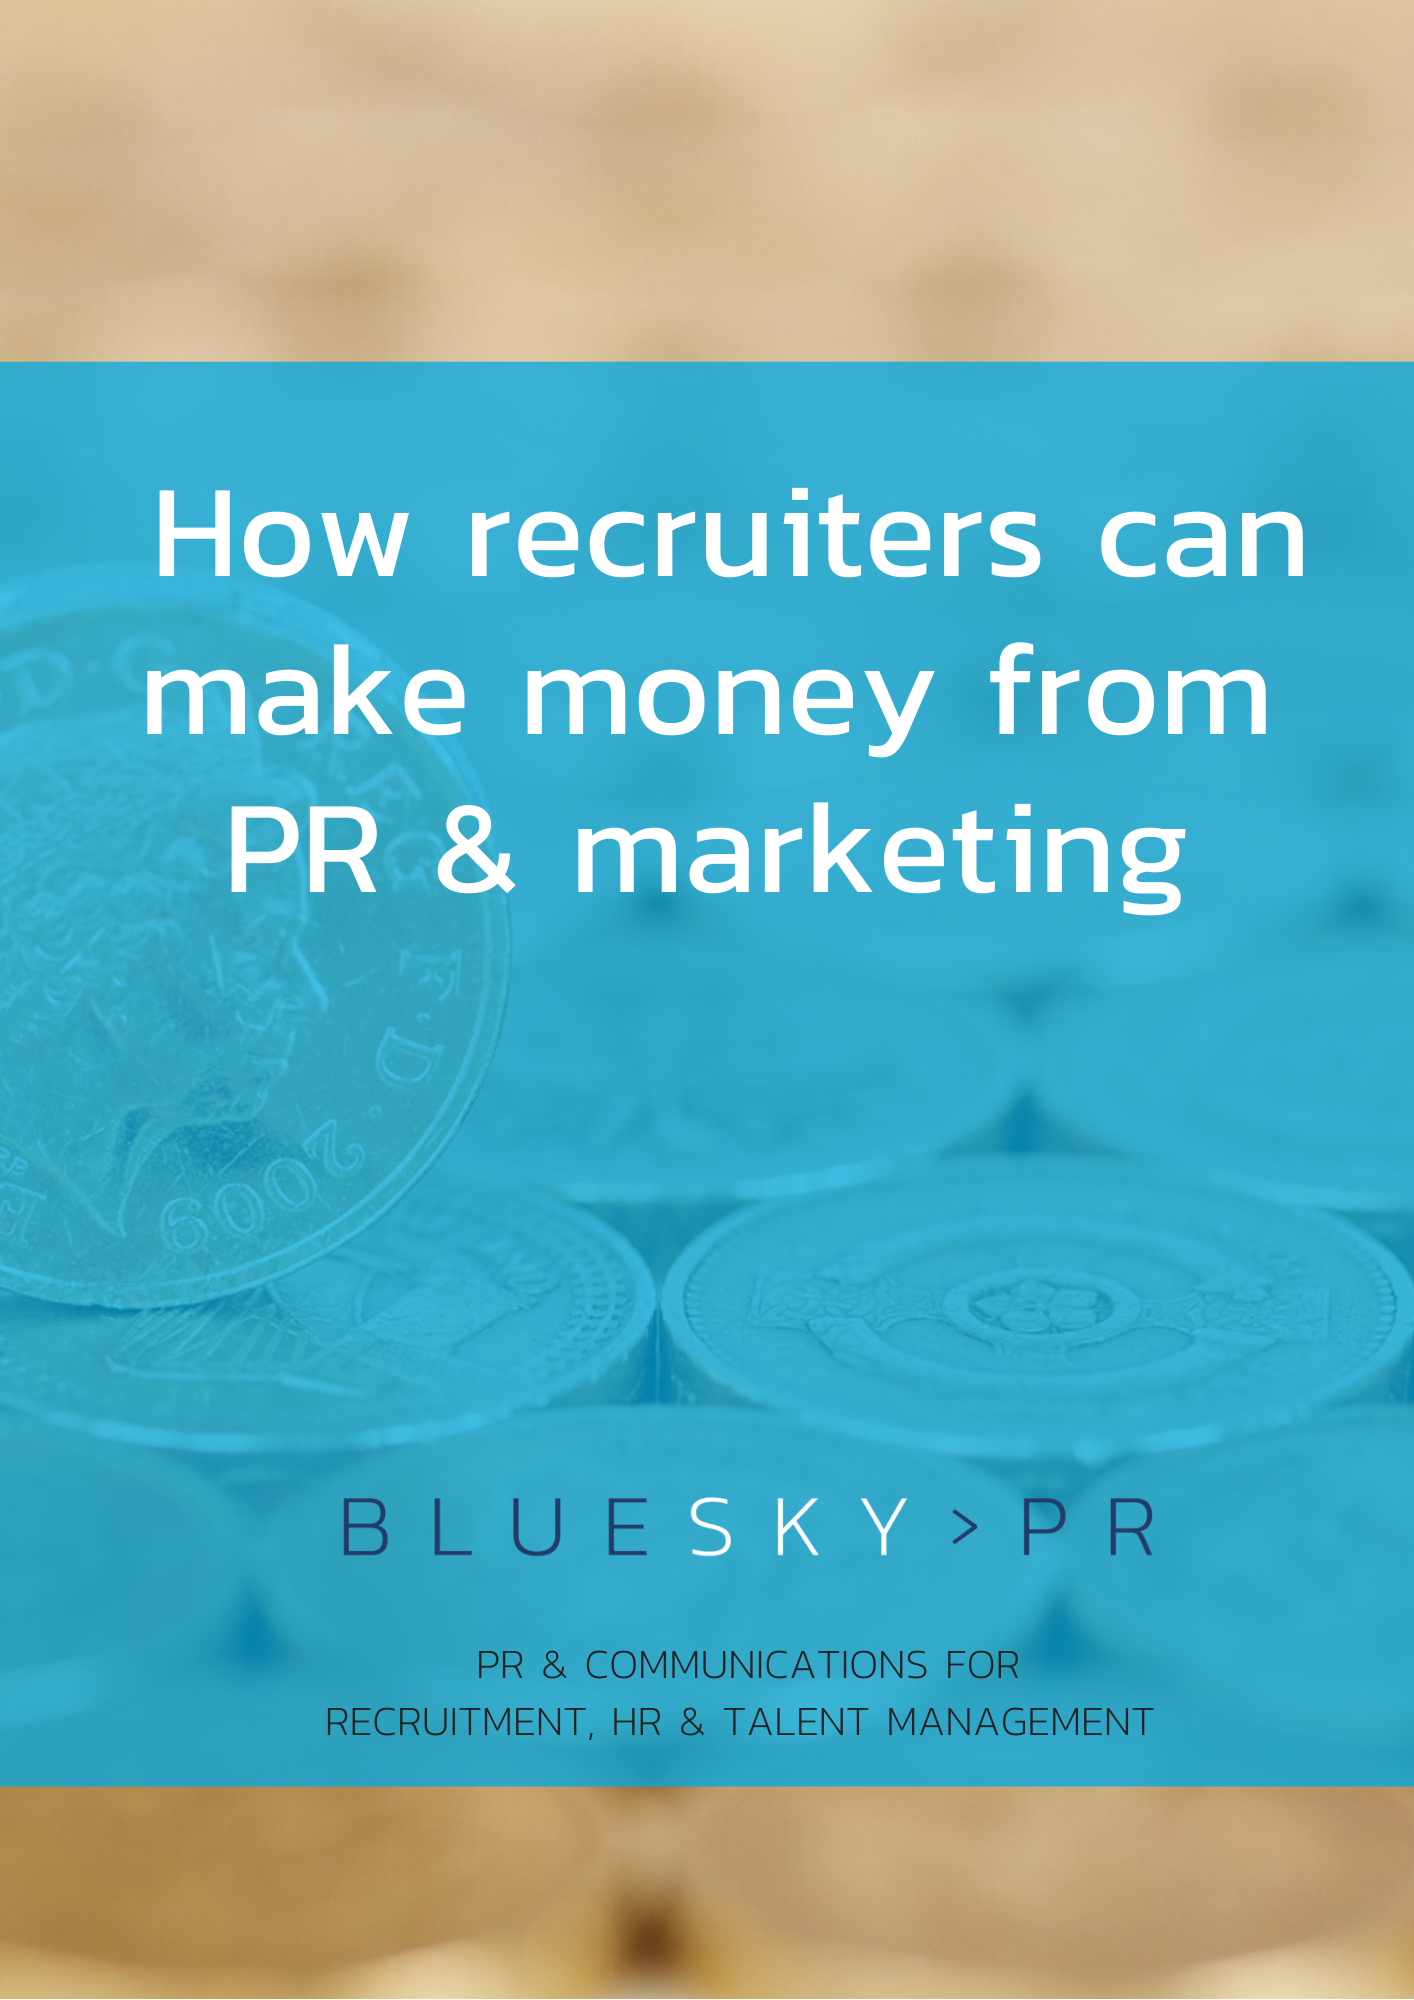 How recruiters can make money from PR & marketing (1)